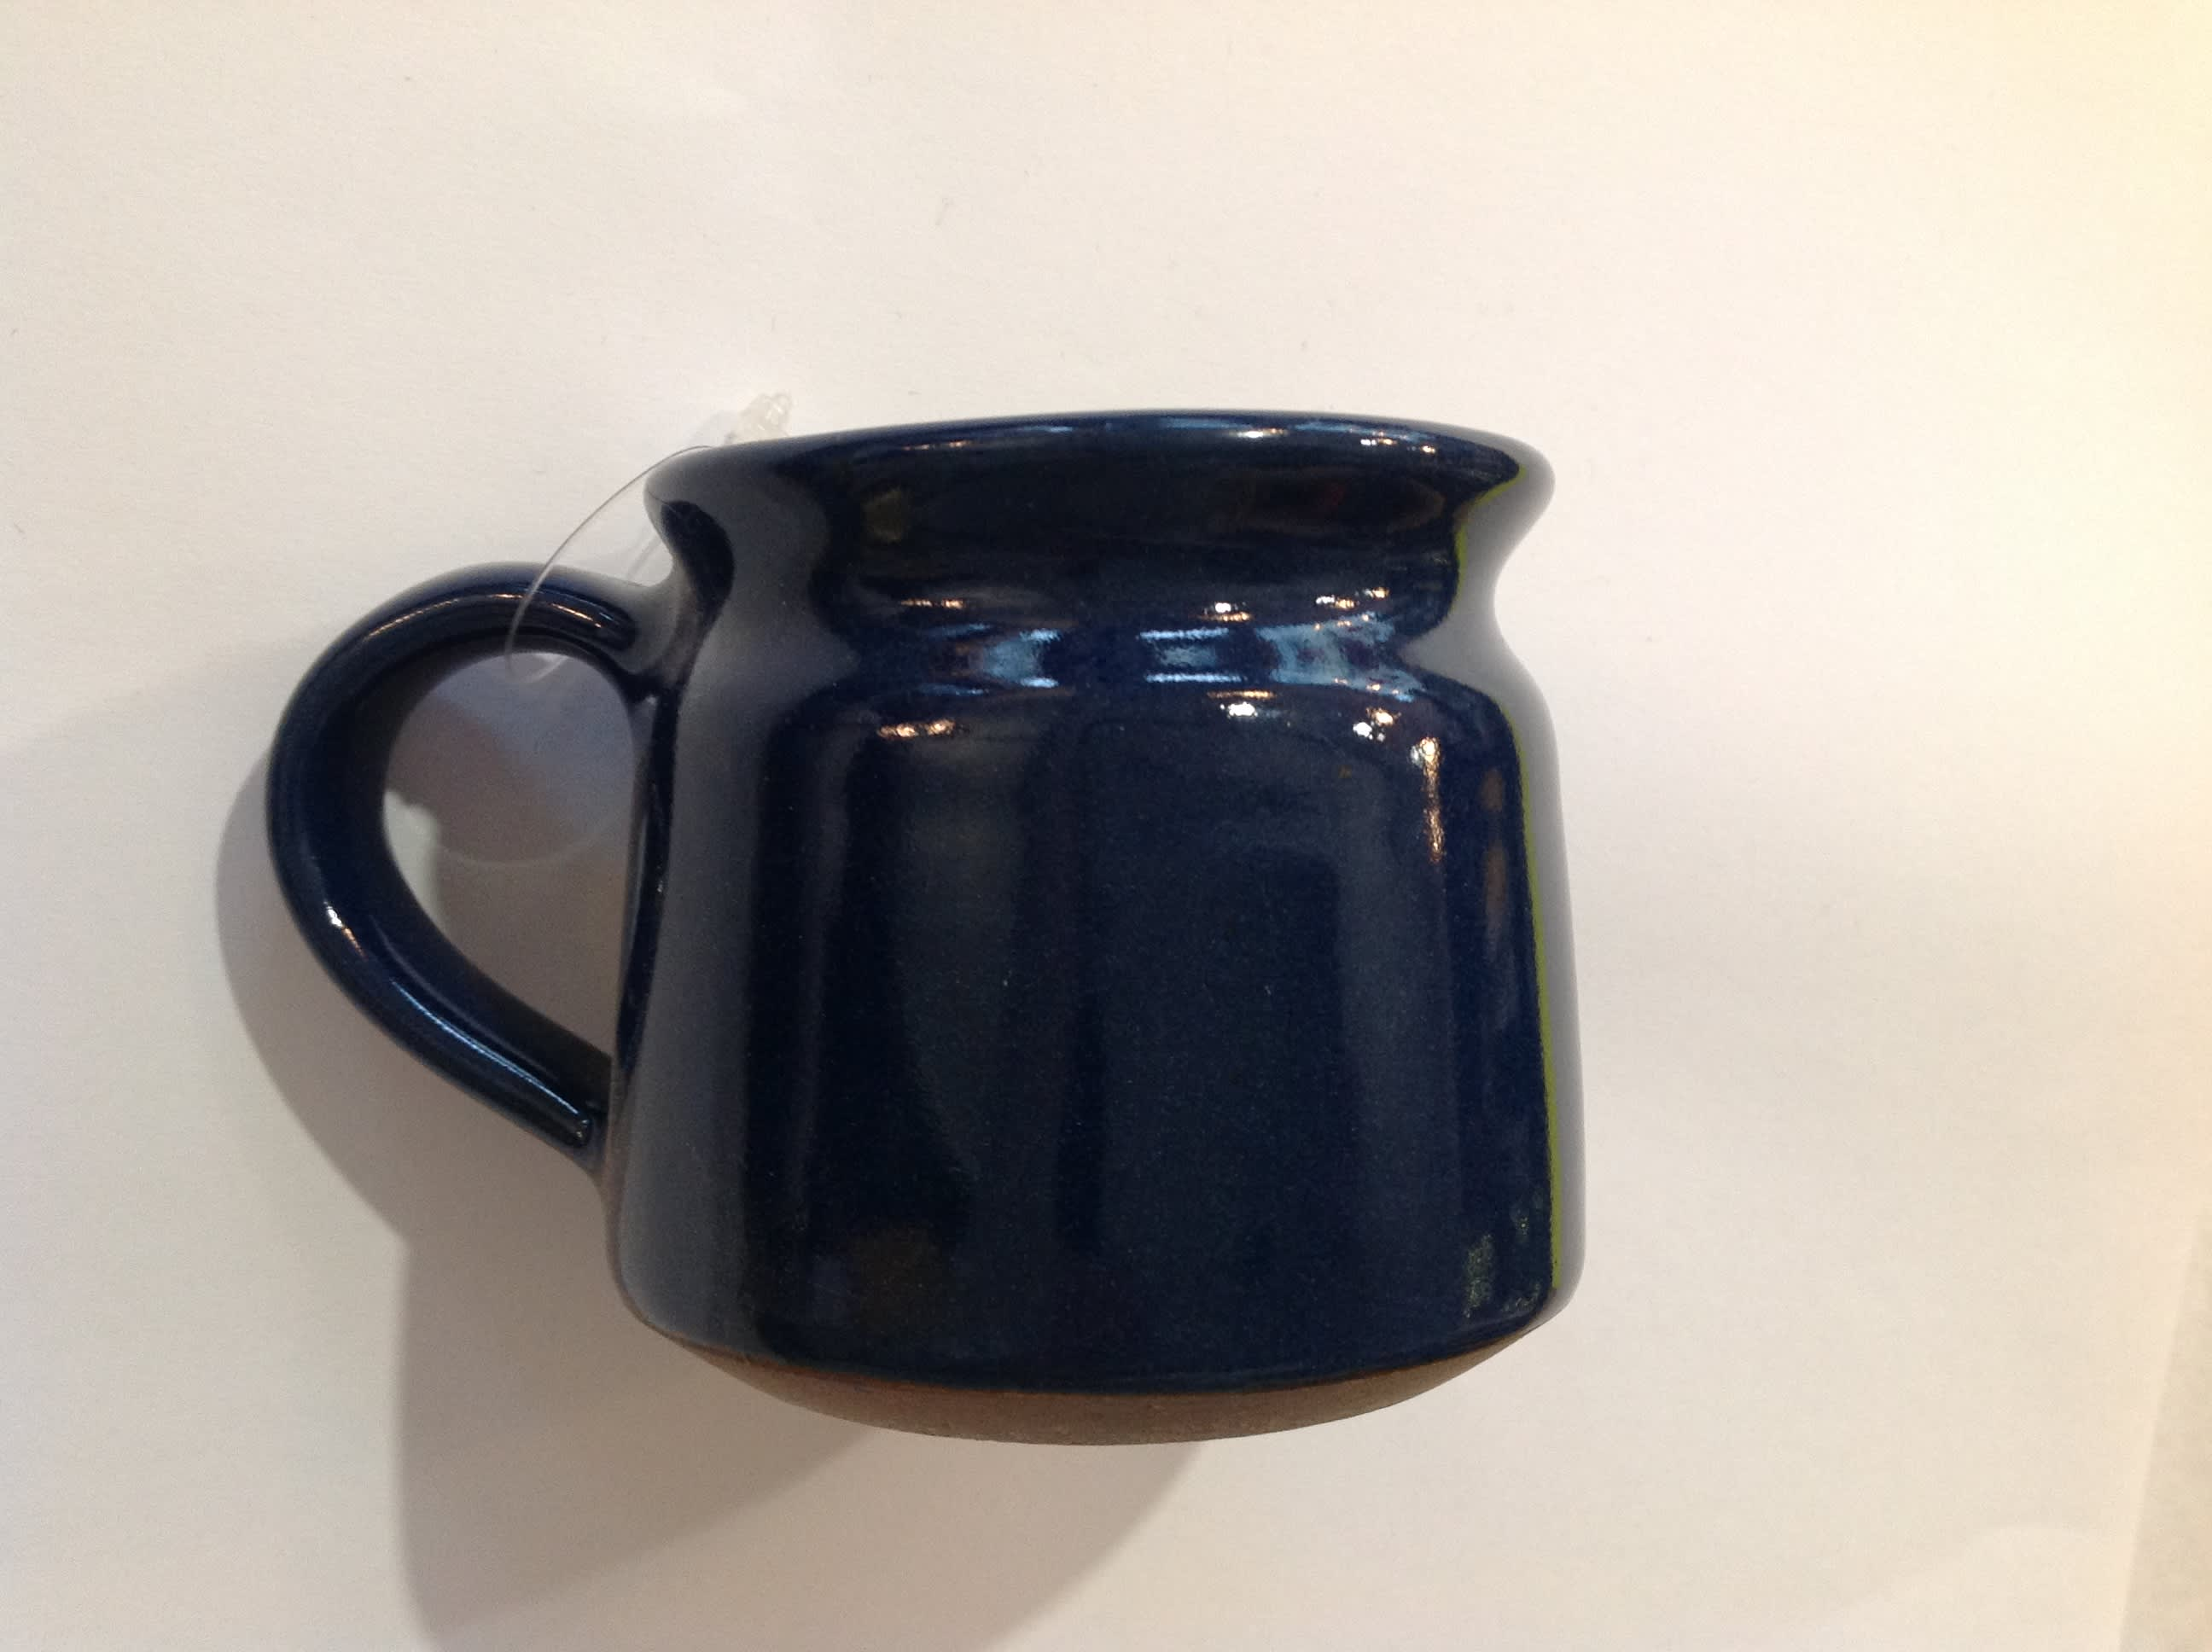 New Overseas Traders Handmade Fairtrade Mug in Dark Blue with white inside